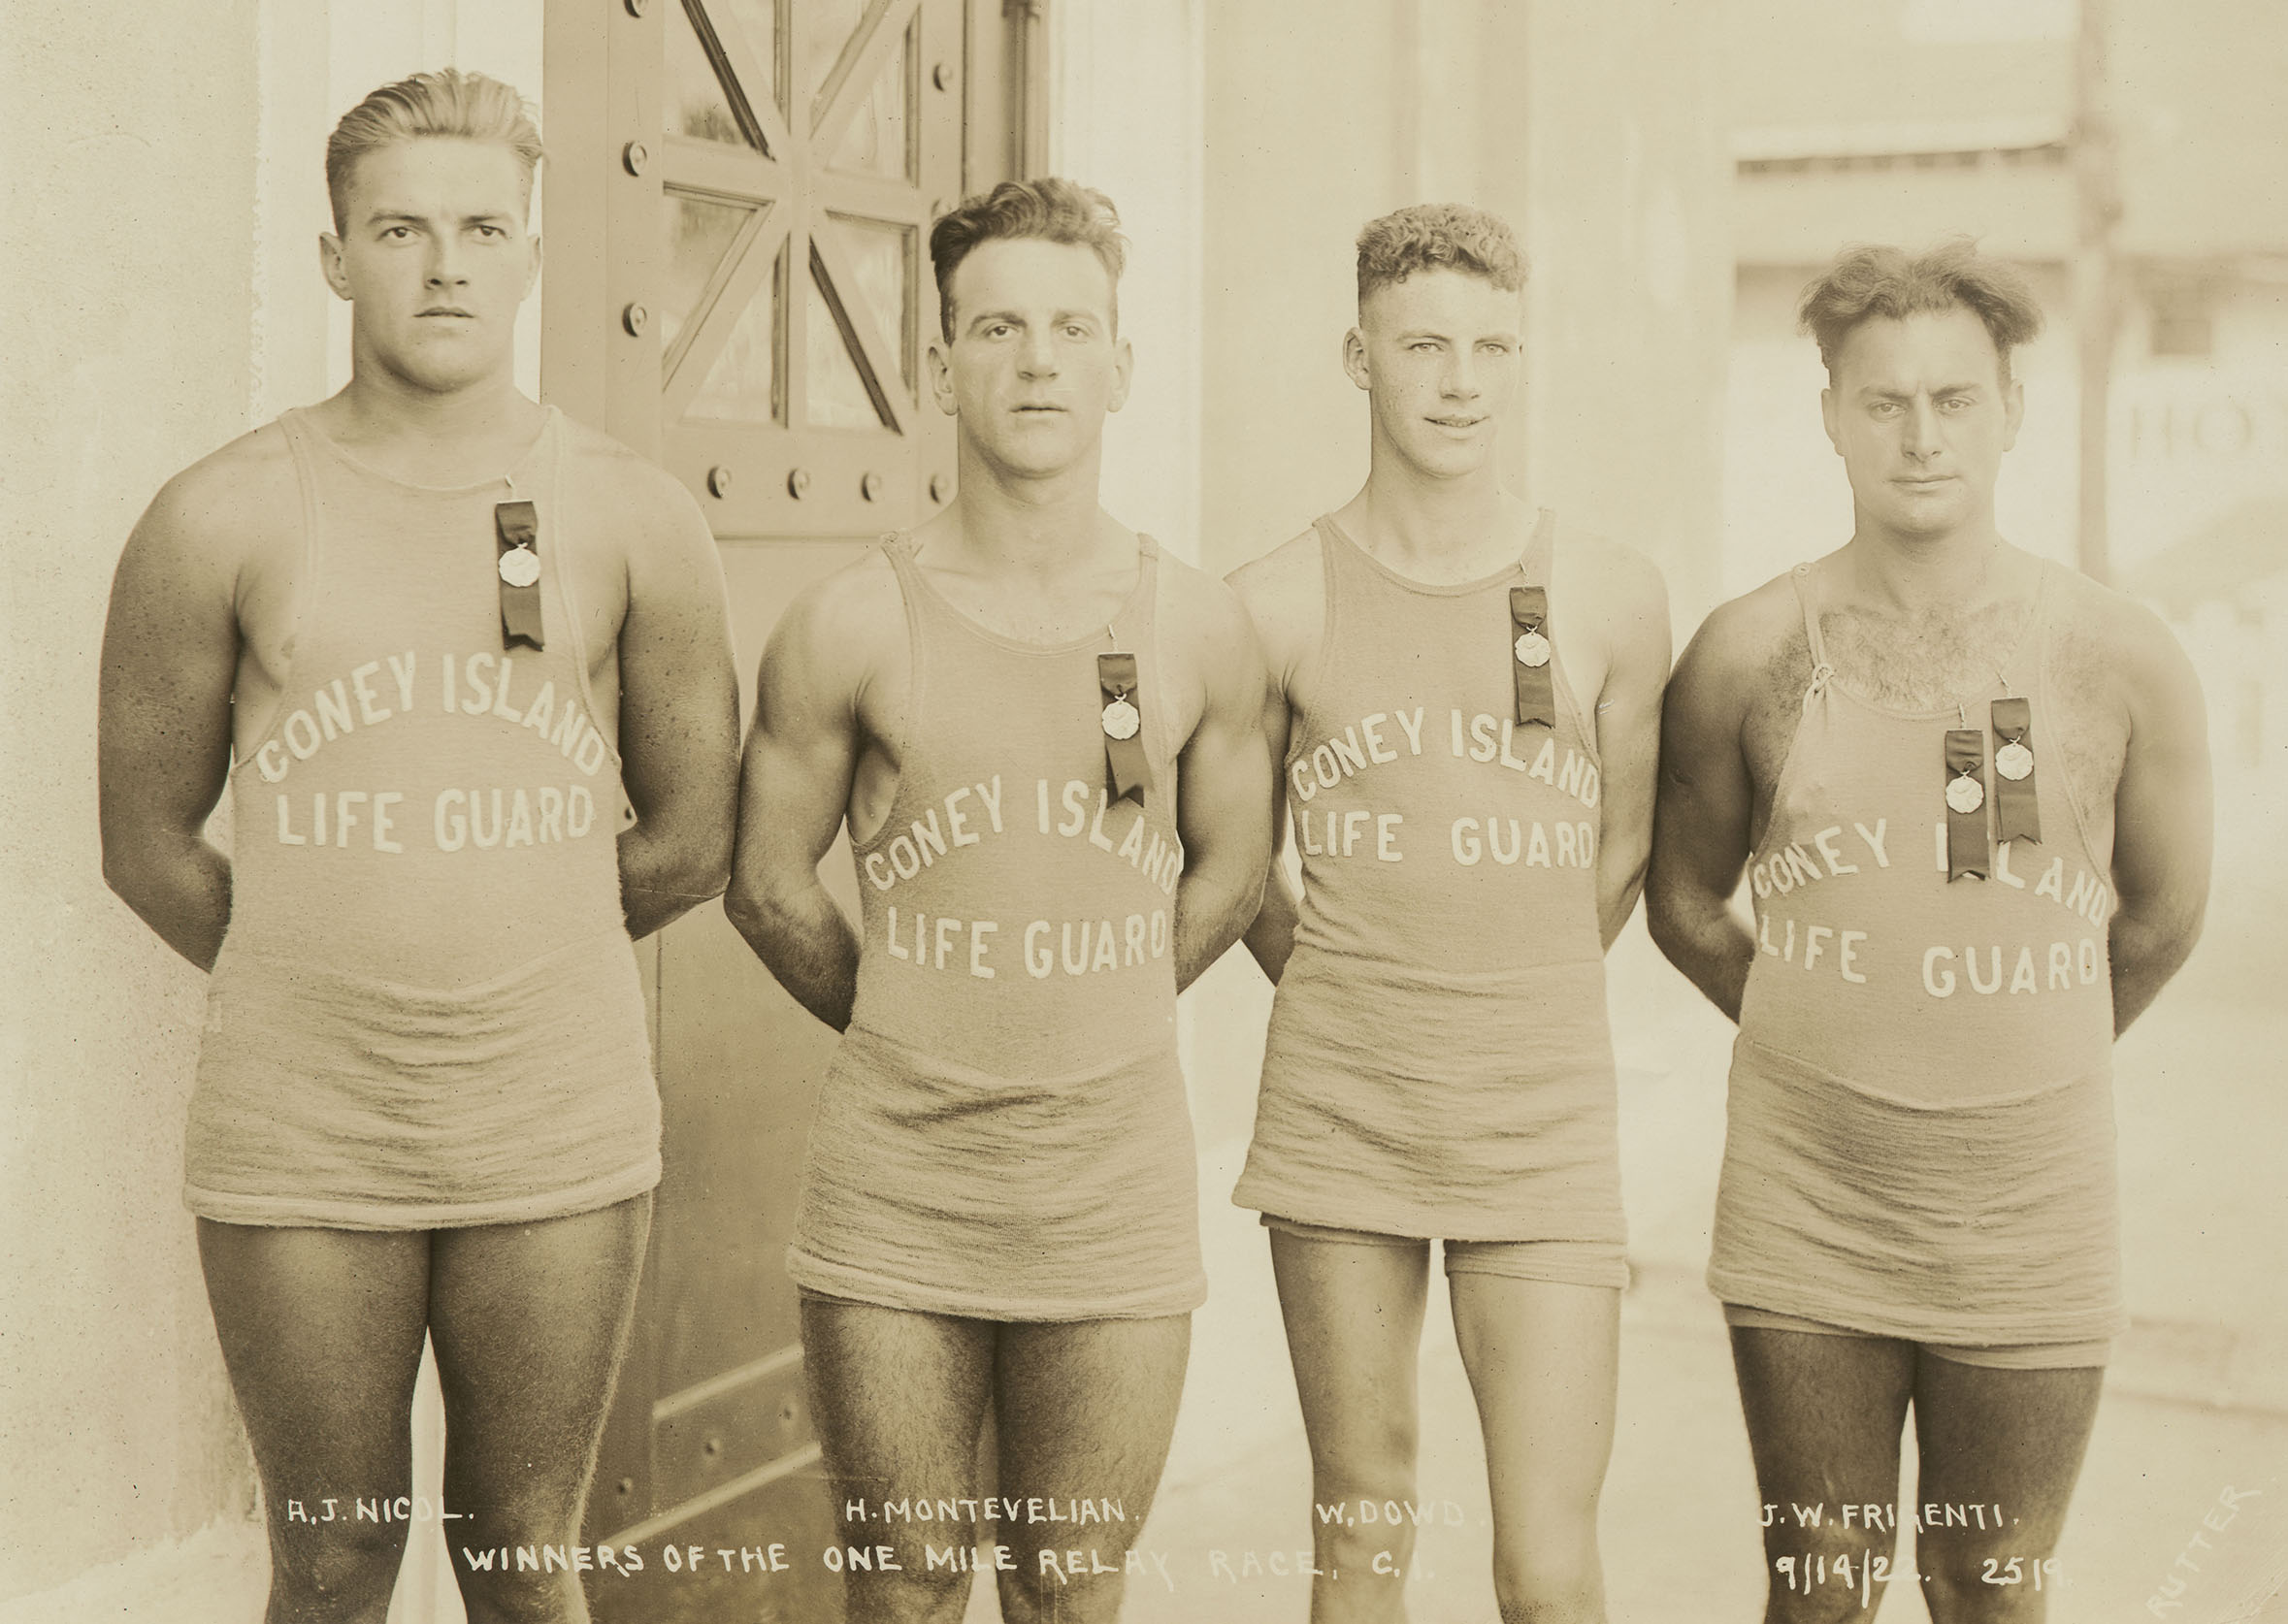 Coney Island Lifeguards, September 19, 1922. Photo by E.E. Rutter, Borough President Brooklyn Collection, NYC Municipal Archives.